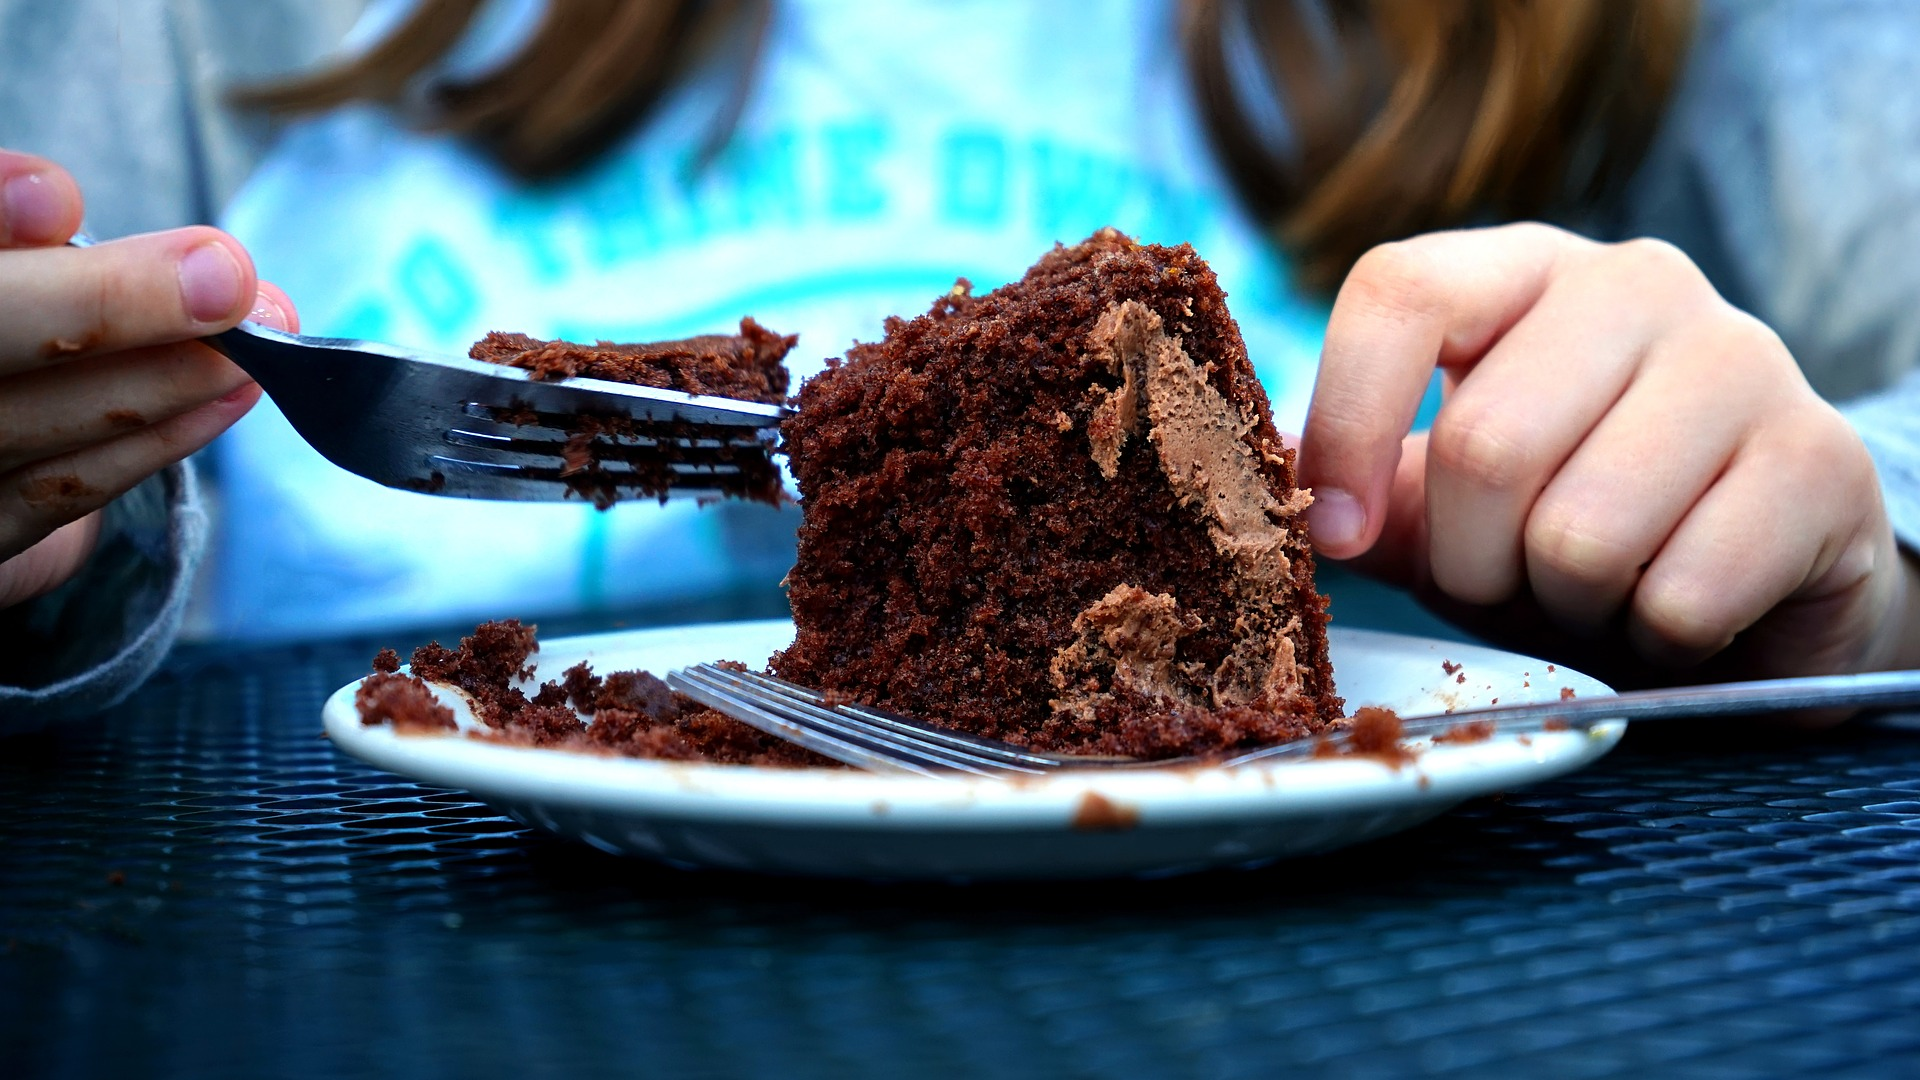 Girl eating a chocolate cake